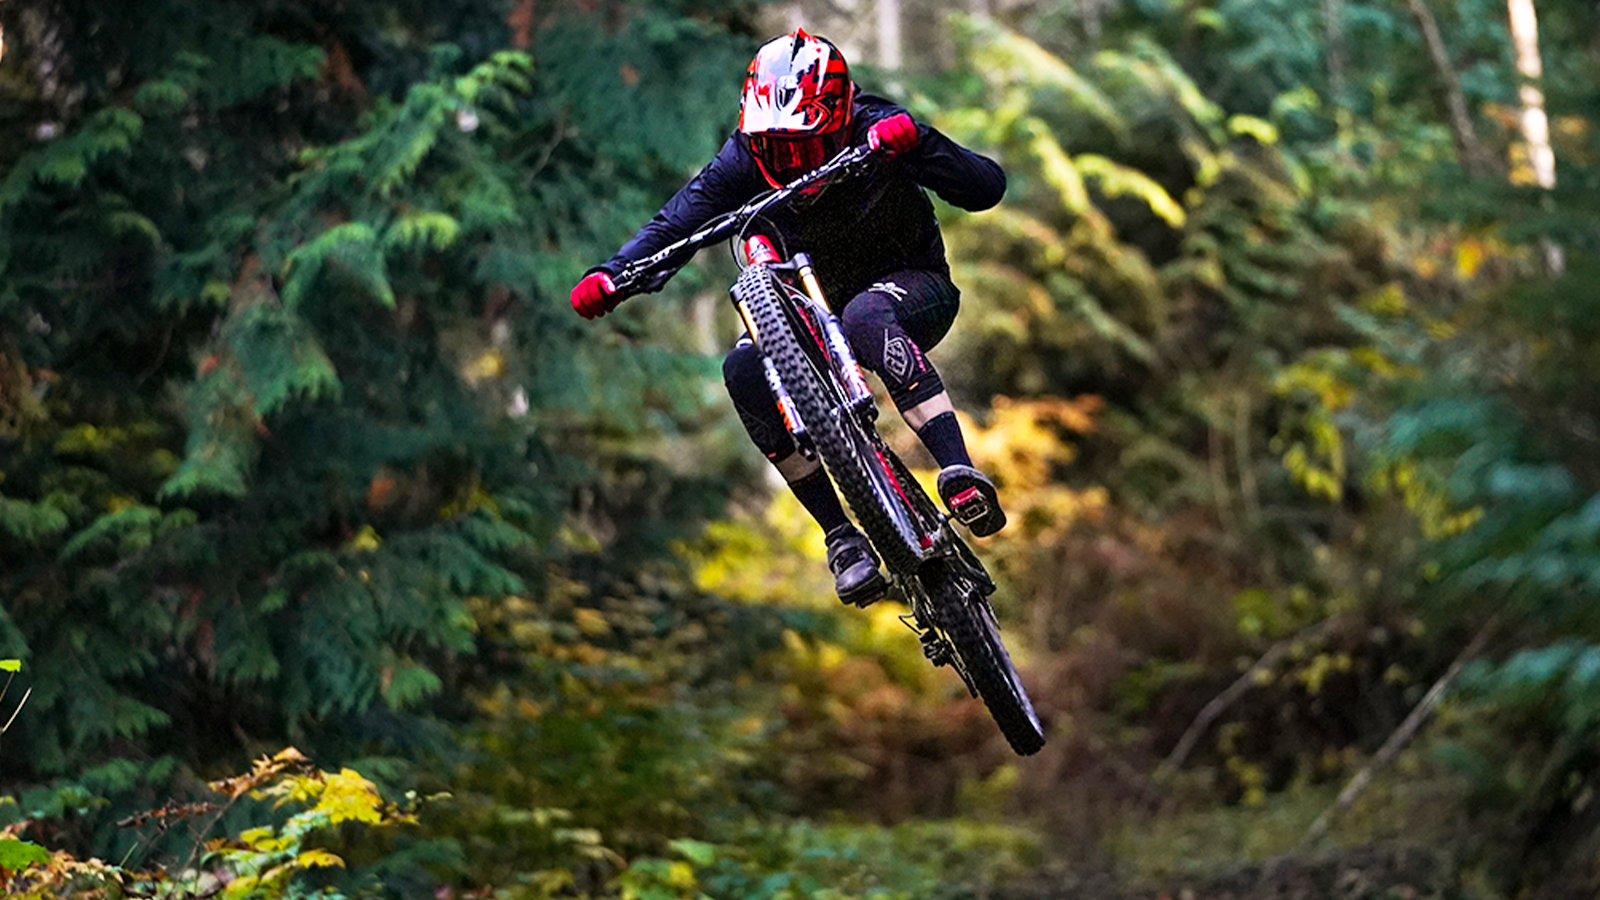 Charging Hard, Vaea Verbeeck Shows Why She Is the Reigning Queen of Crankworx